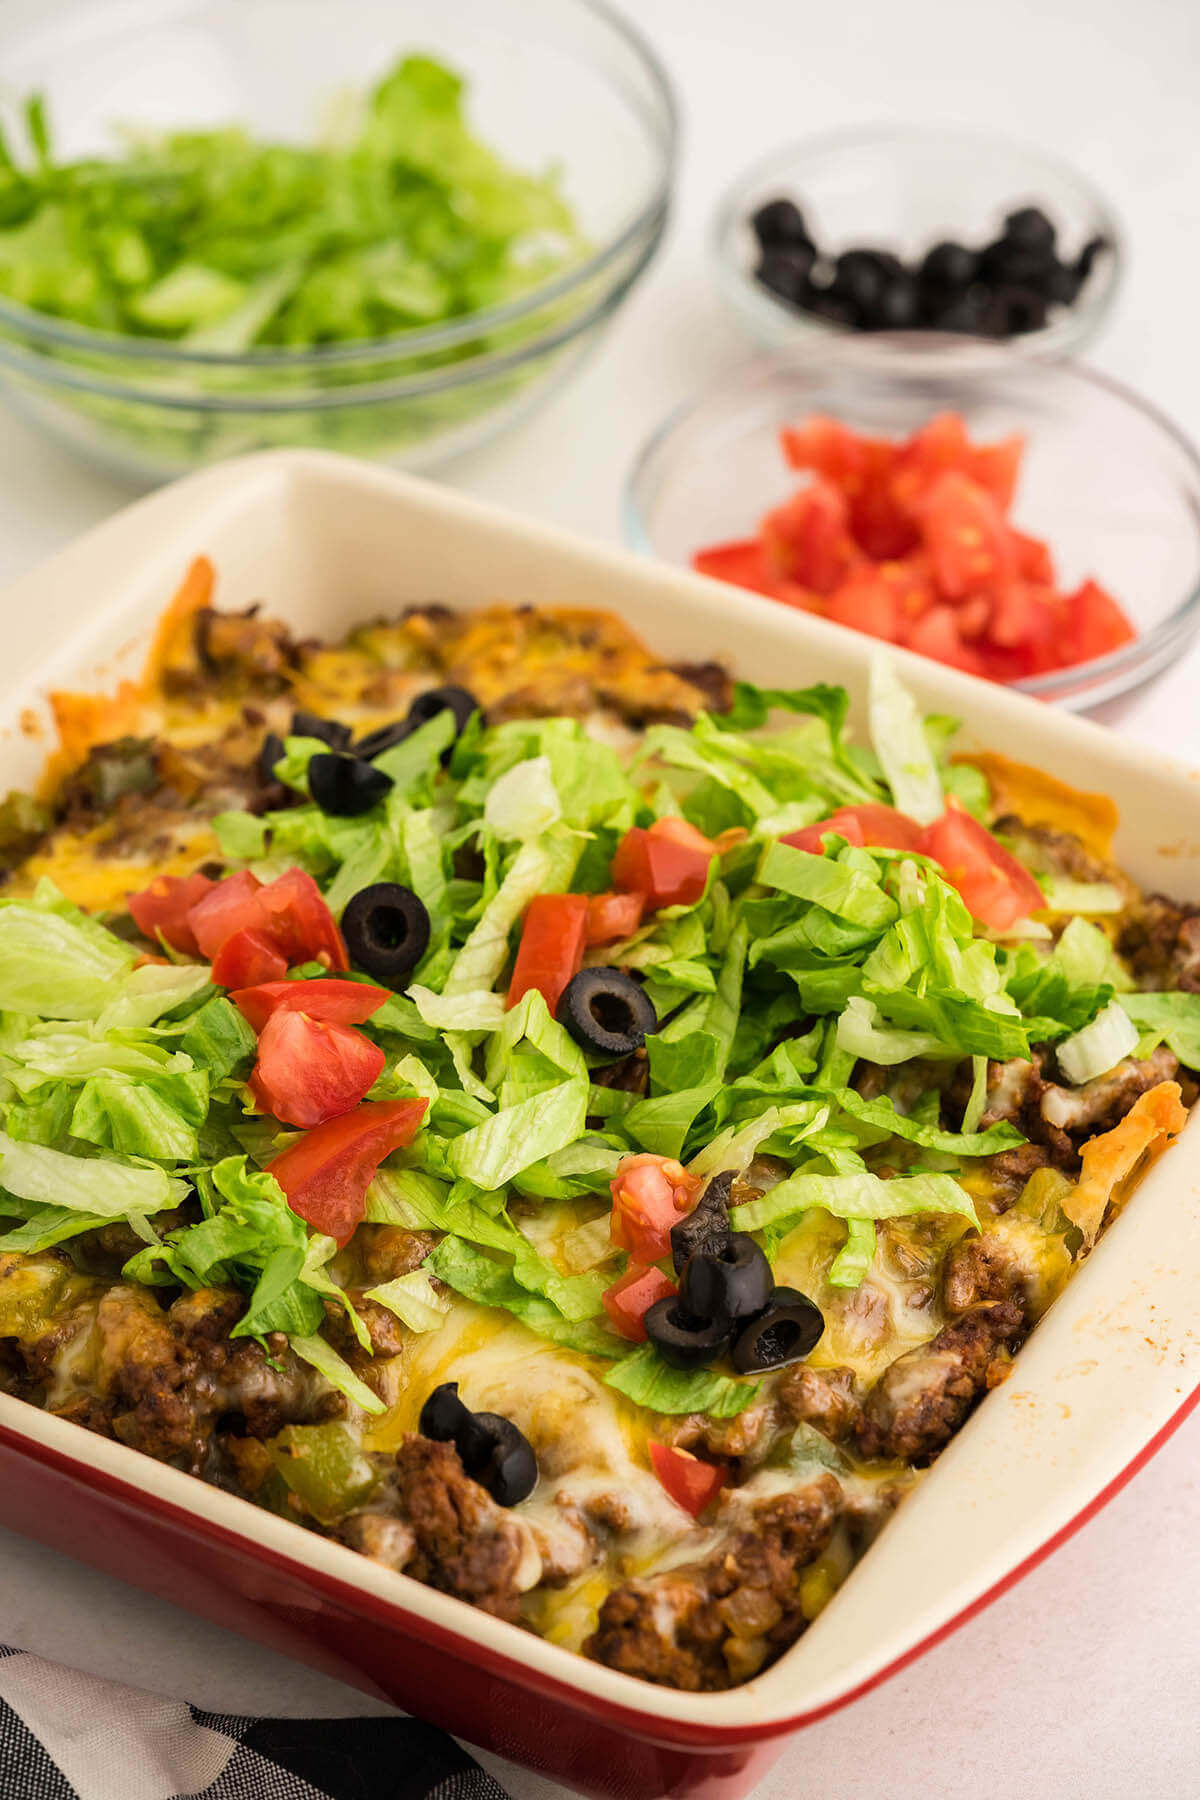 Taco Salad Casserole topped with shredded lettuce, tomatoes and olives.